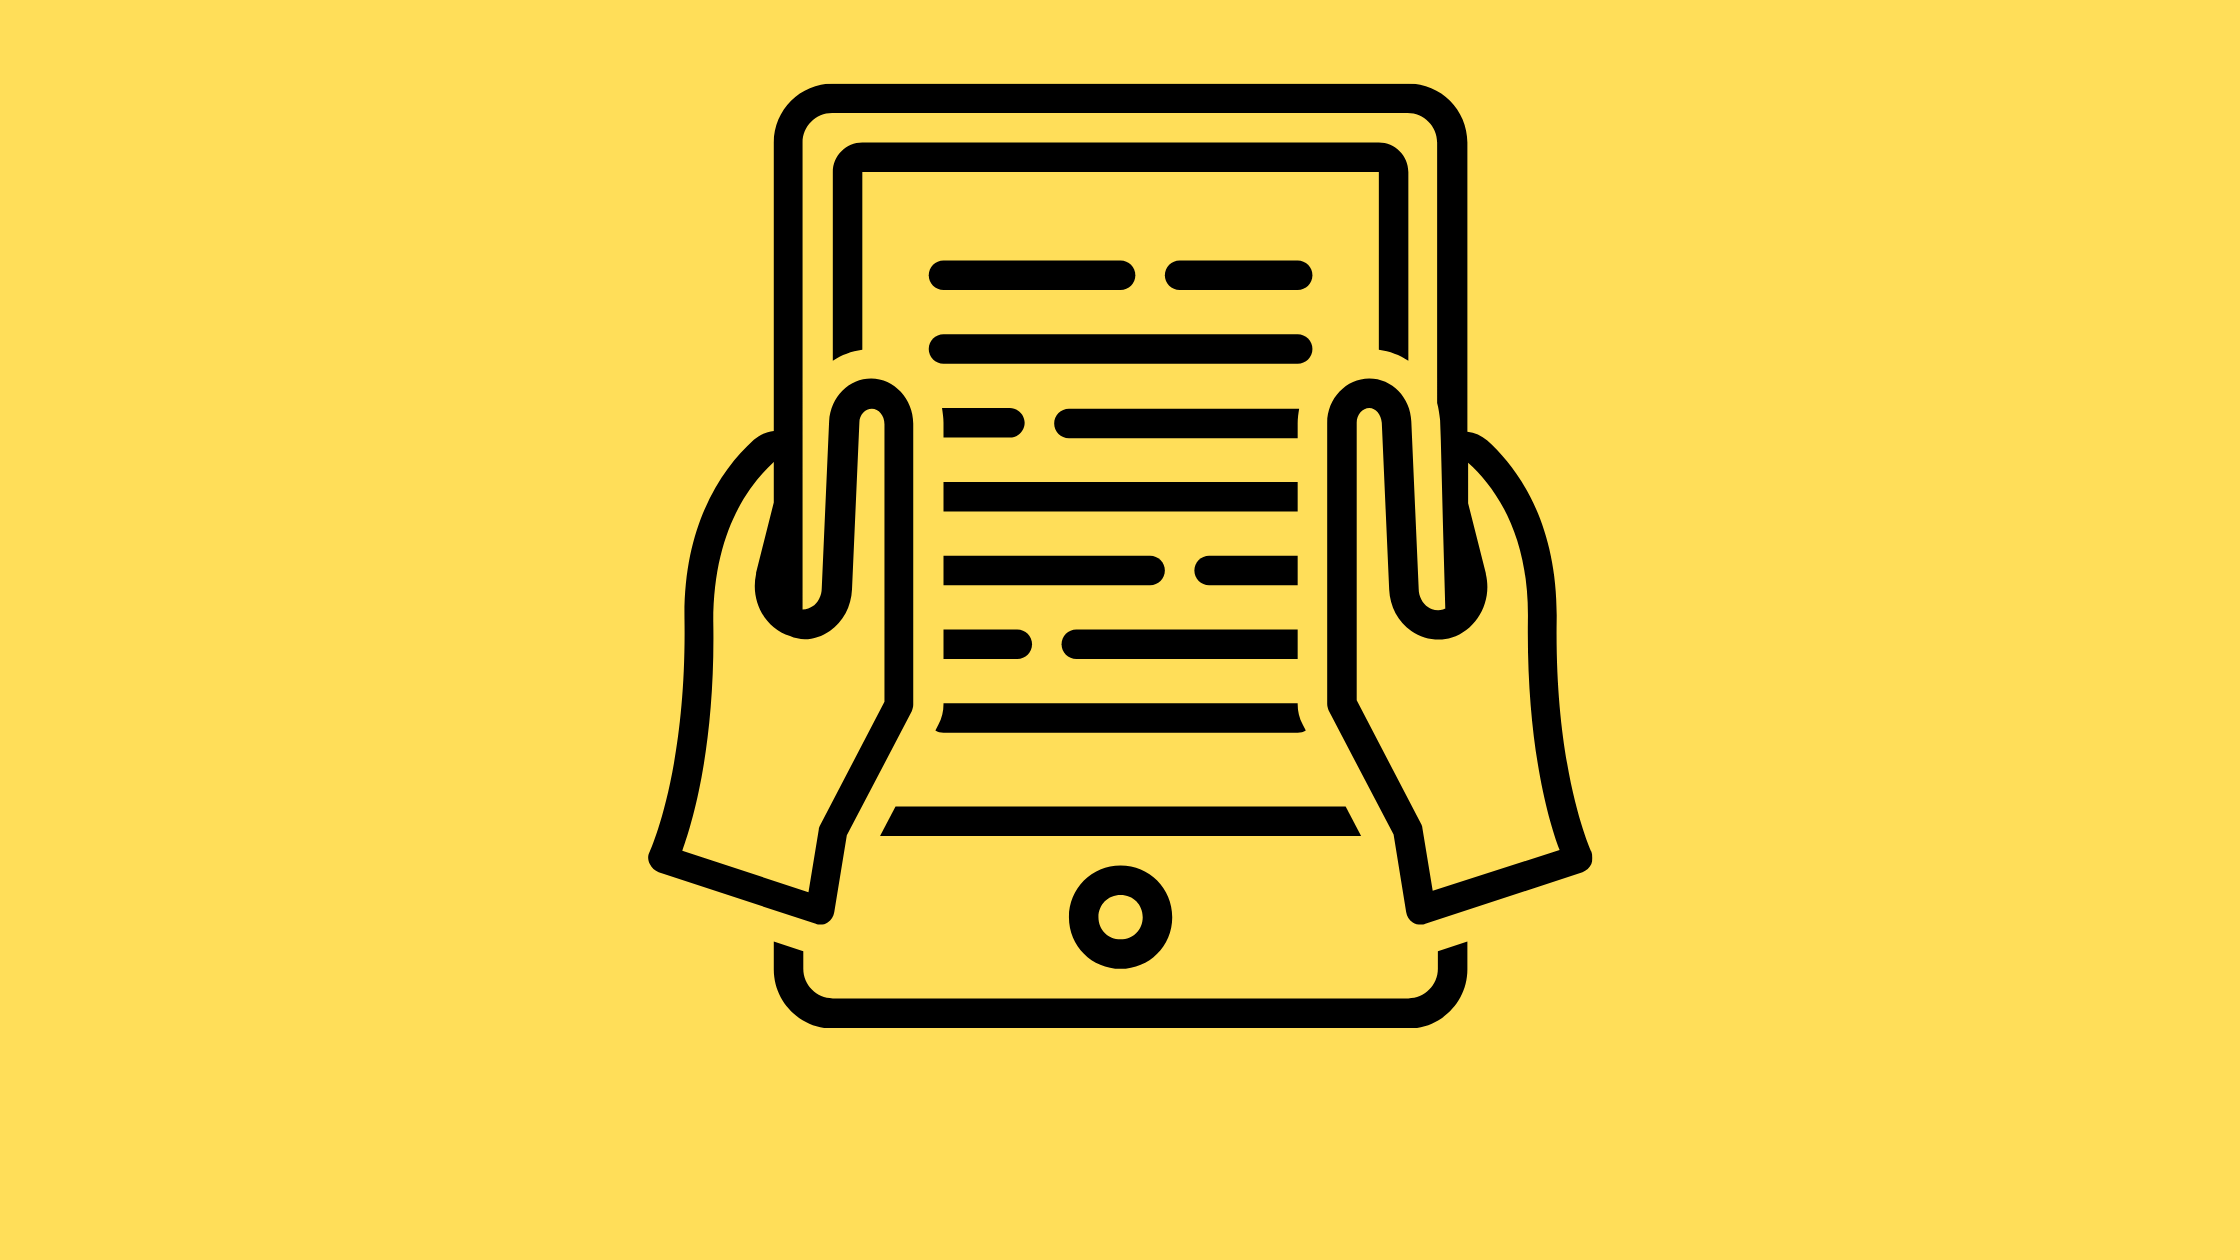 illustration of two hands holding an e-reader black on yellow background